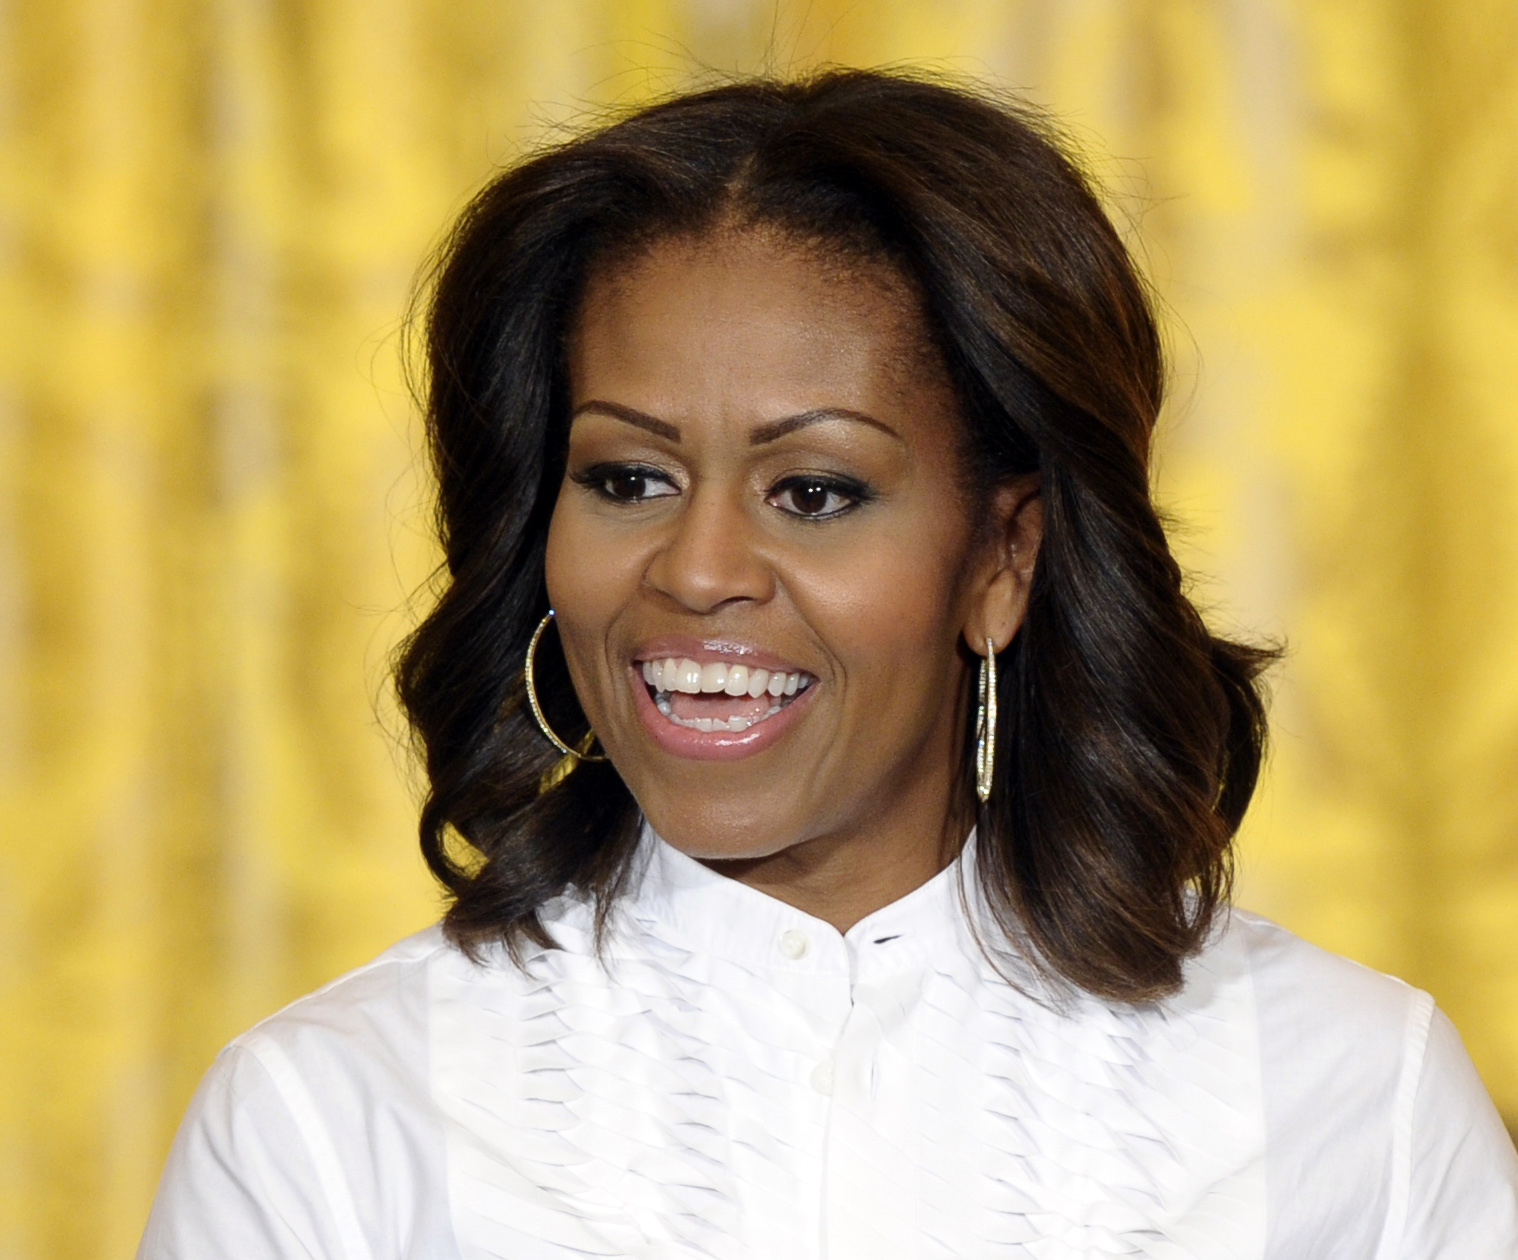 Michelle Obama Wallpapers (32 images) - DodoWallpaper